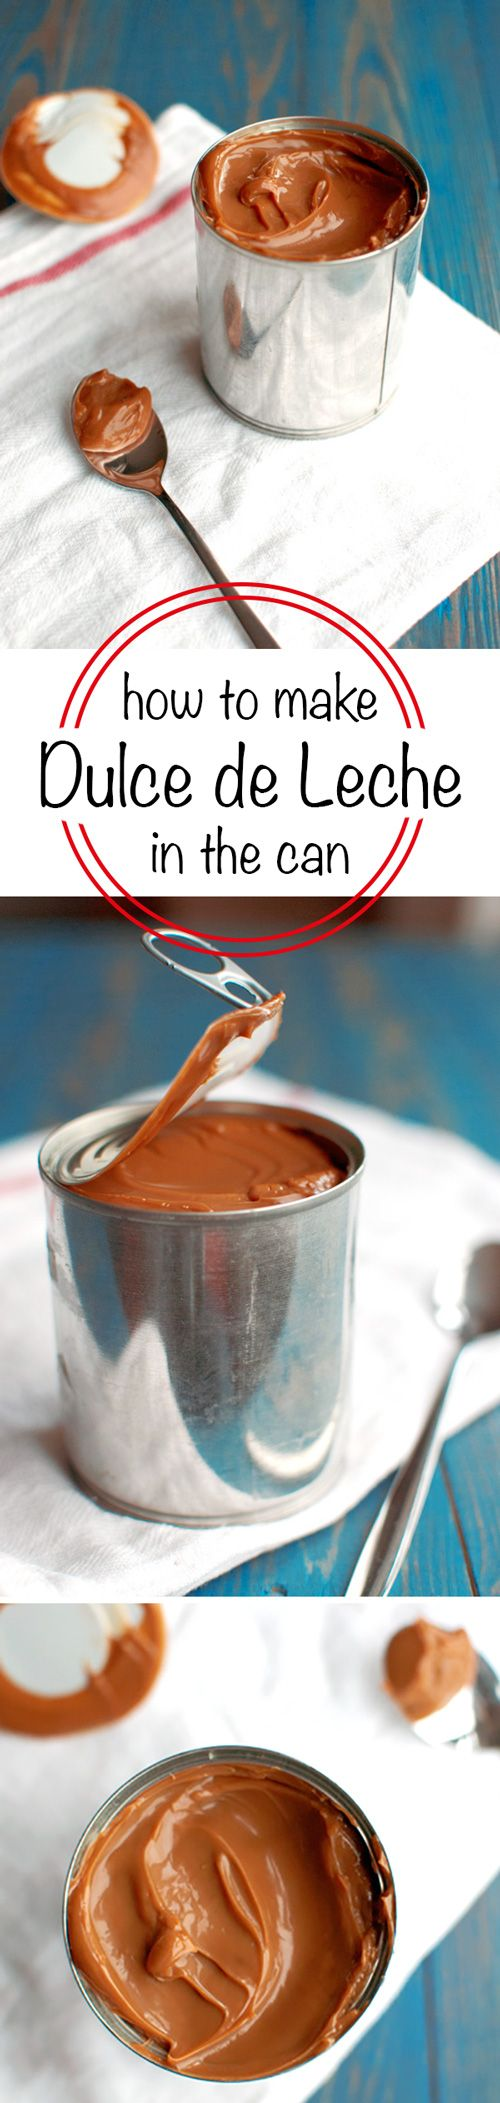 How to Make Dulce de Leche from a Can of Sweetened Condensed Milk - Super easy and really delicious! | thetoughcookie.com